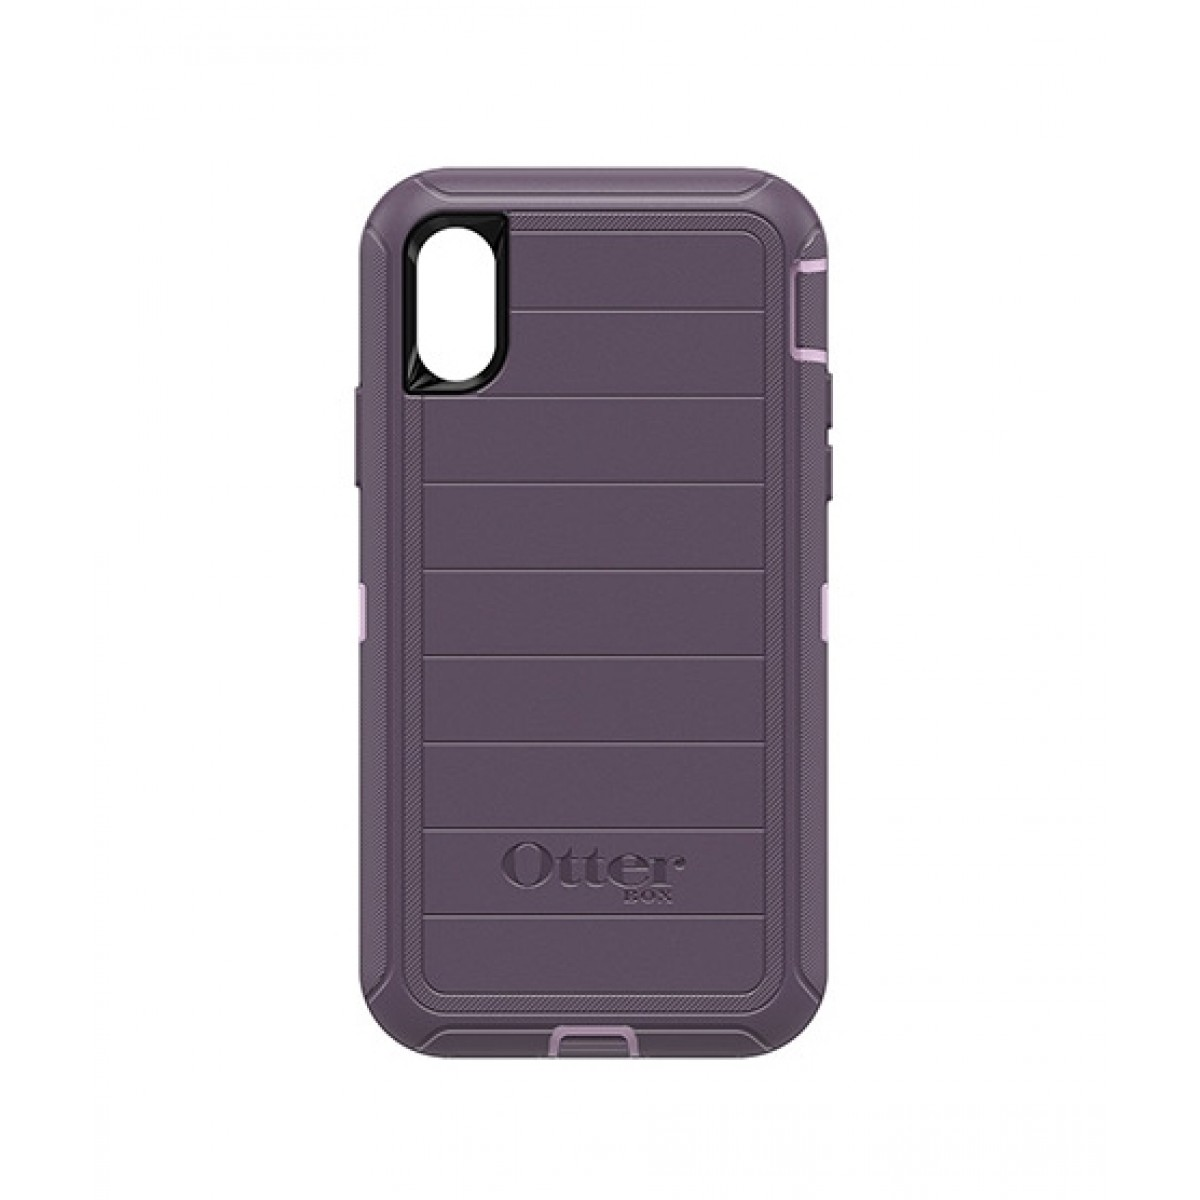 size 40 420d9 bbf63 Reviews for OtterBox Defender Series Pro Case For iPhone XS Max ...